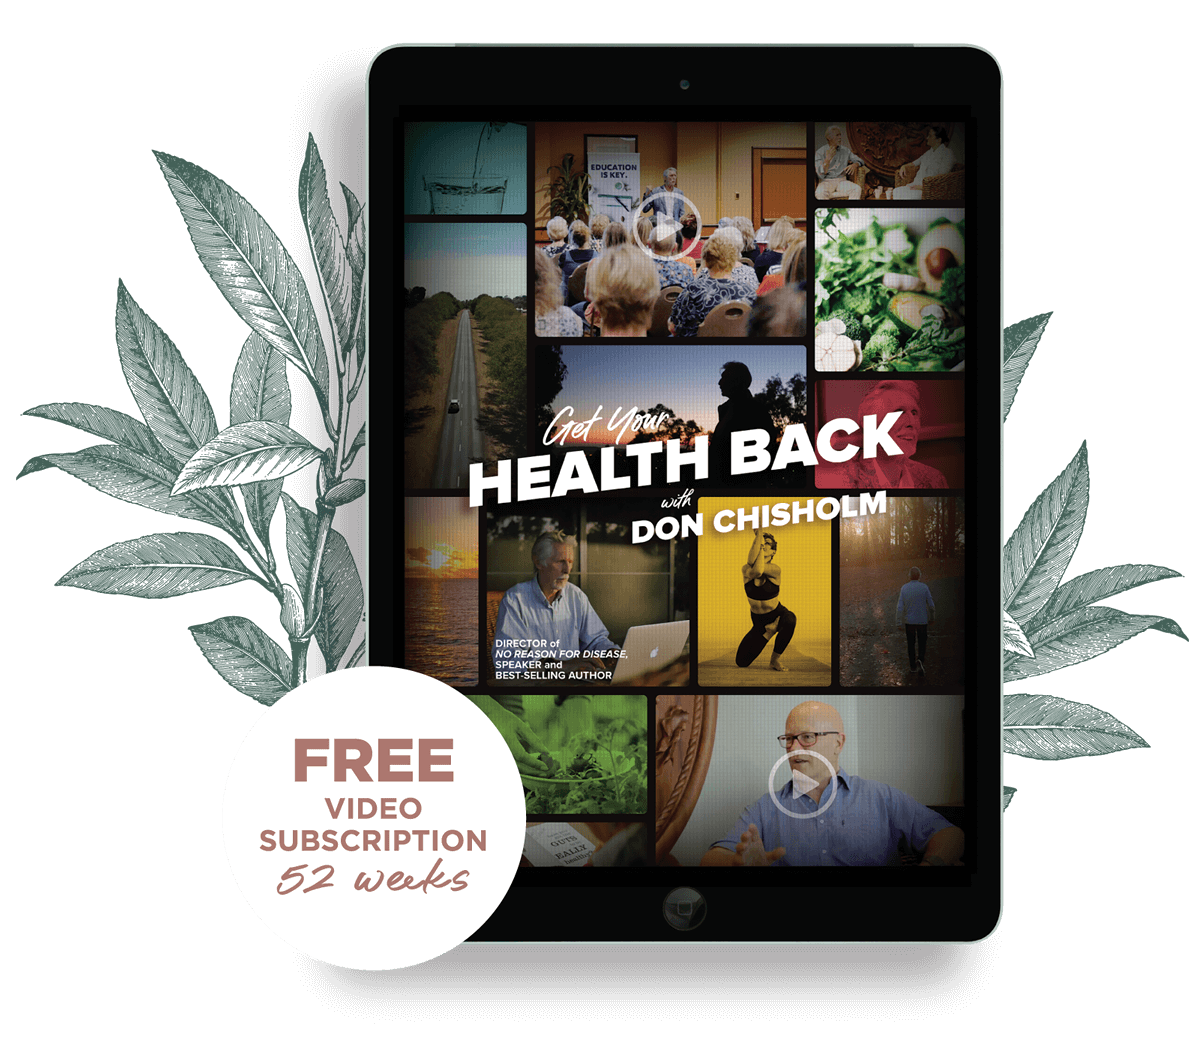 Get your health back with Don Chisholm